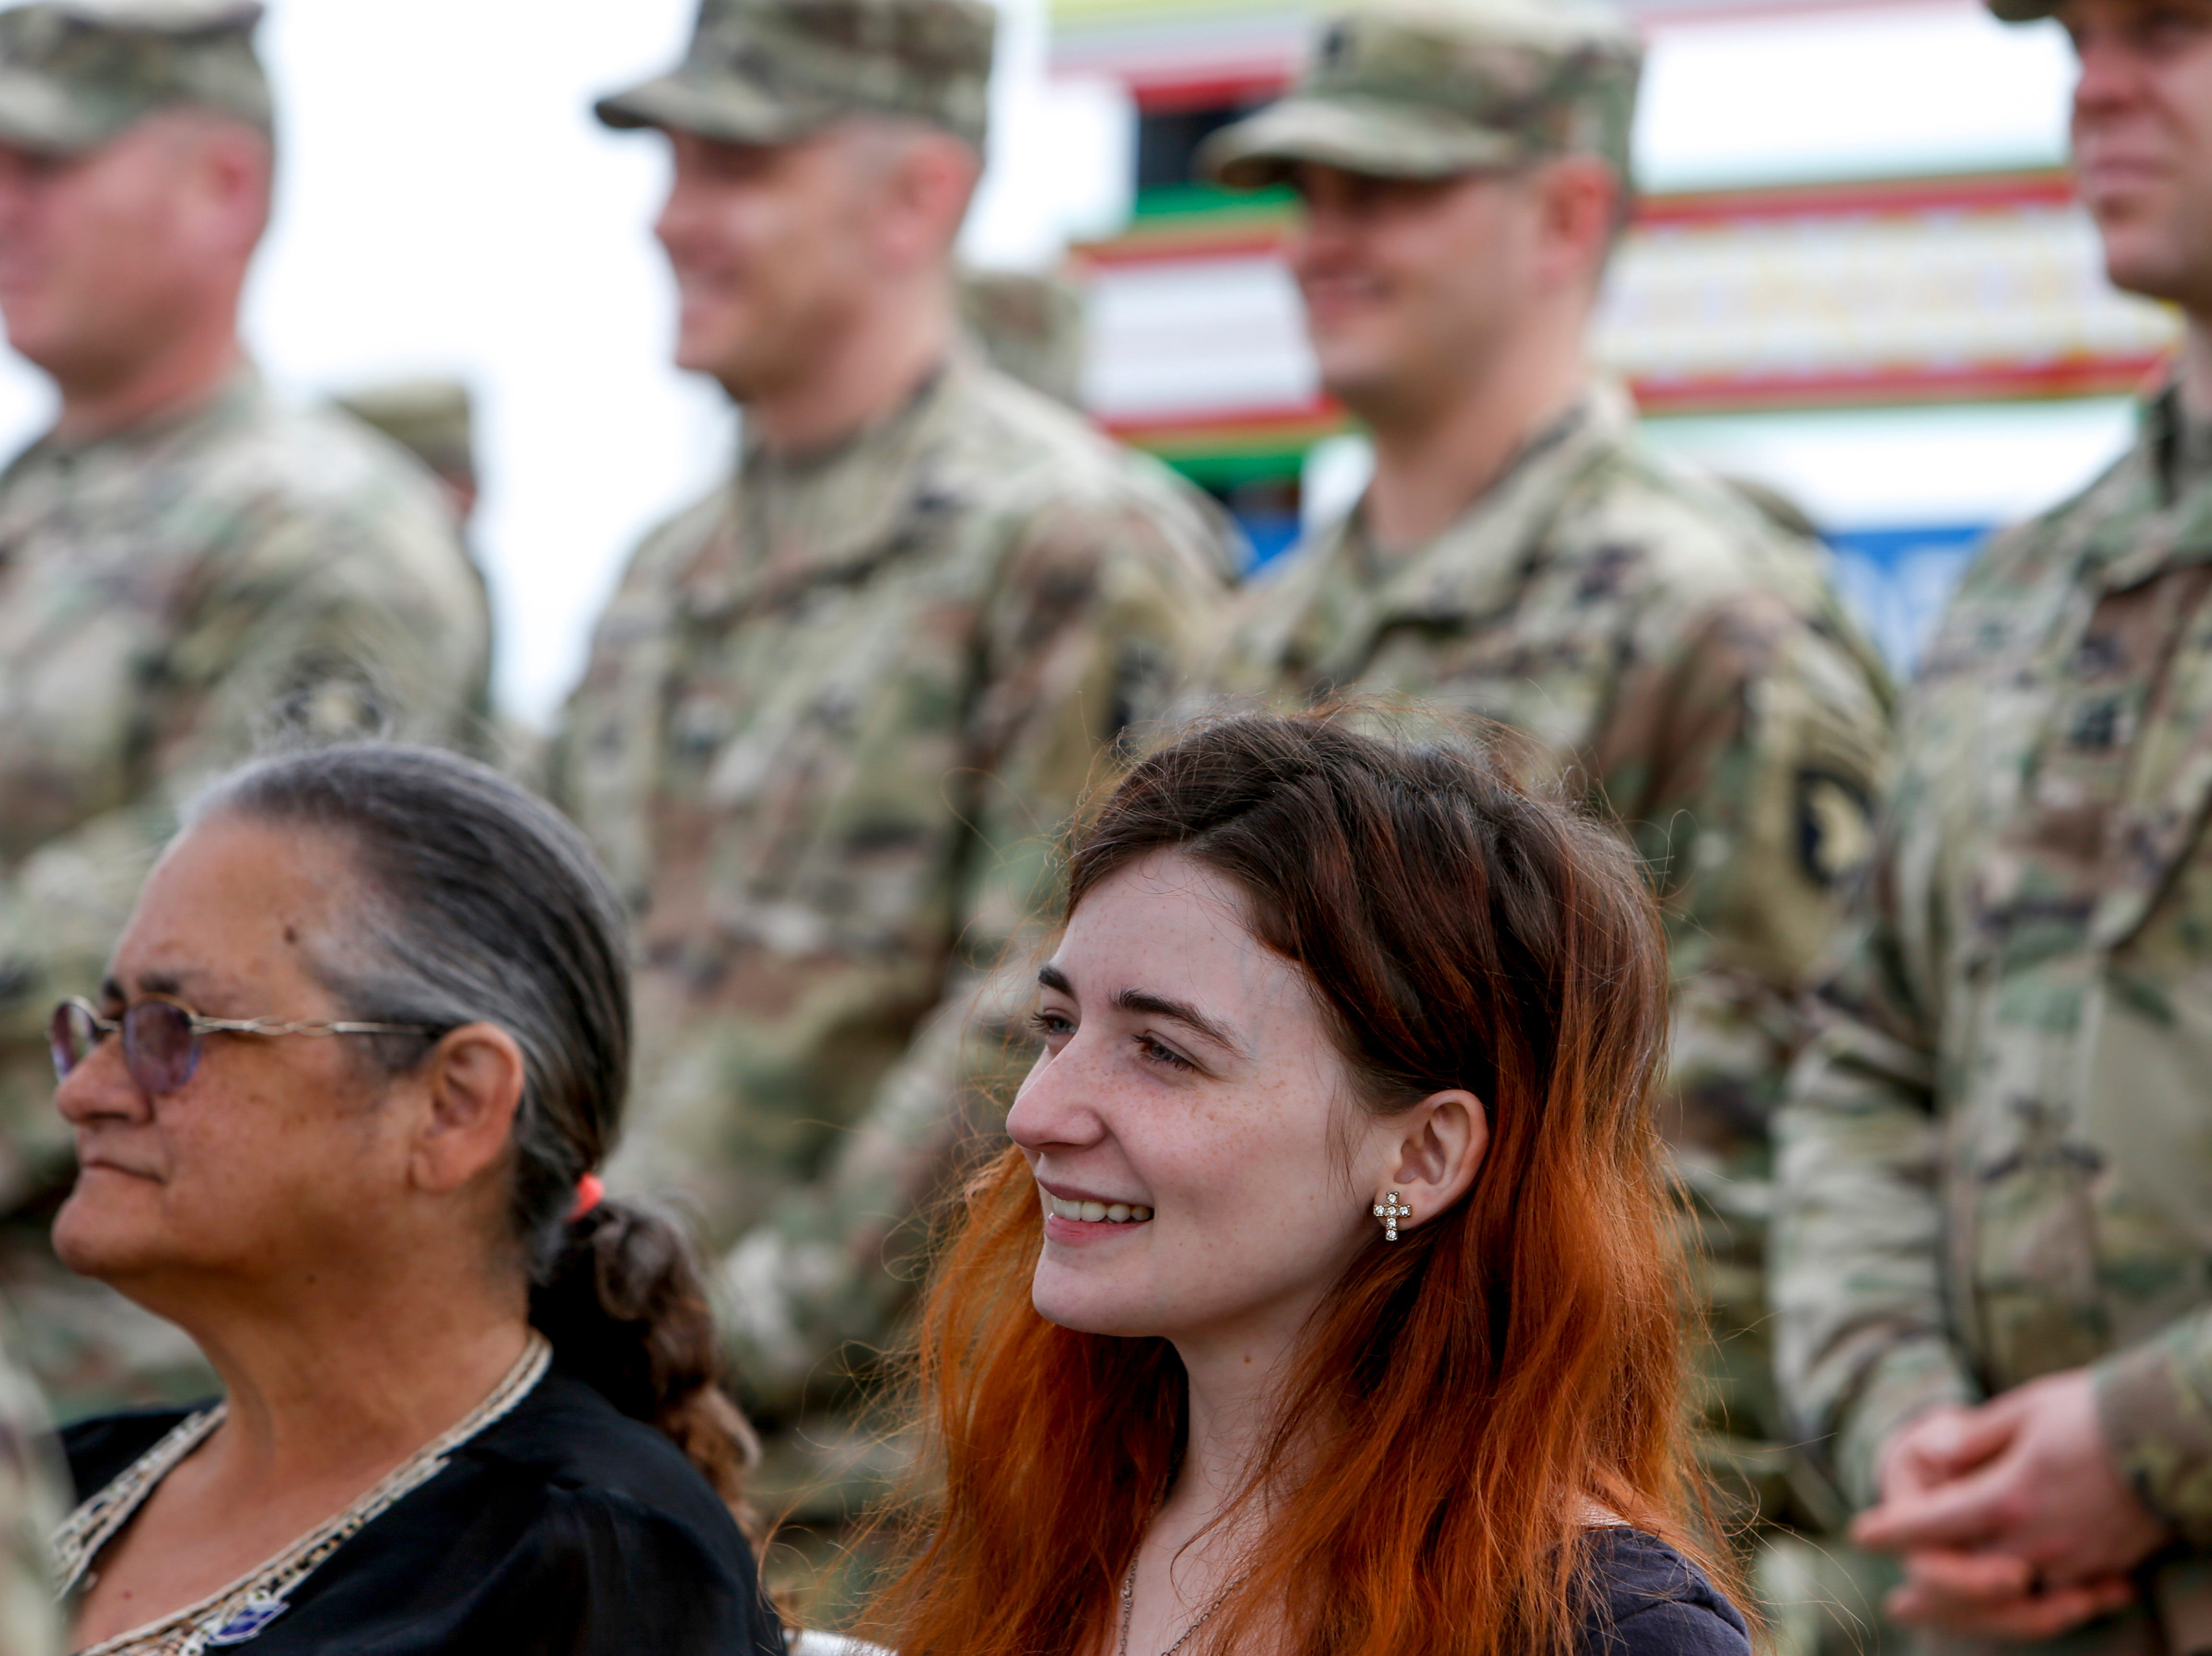 Rhia Gallo smiles while listening to officers speak during a colors casing ceremony prior to deployment for Ukraine at 2 BCT Headquarters in Fort Campbell, KY., on Friday, April 12, 2019.